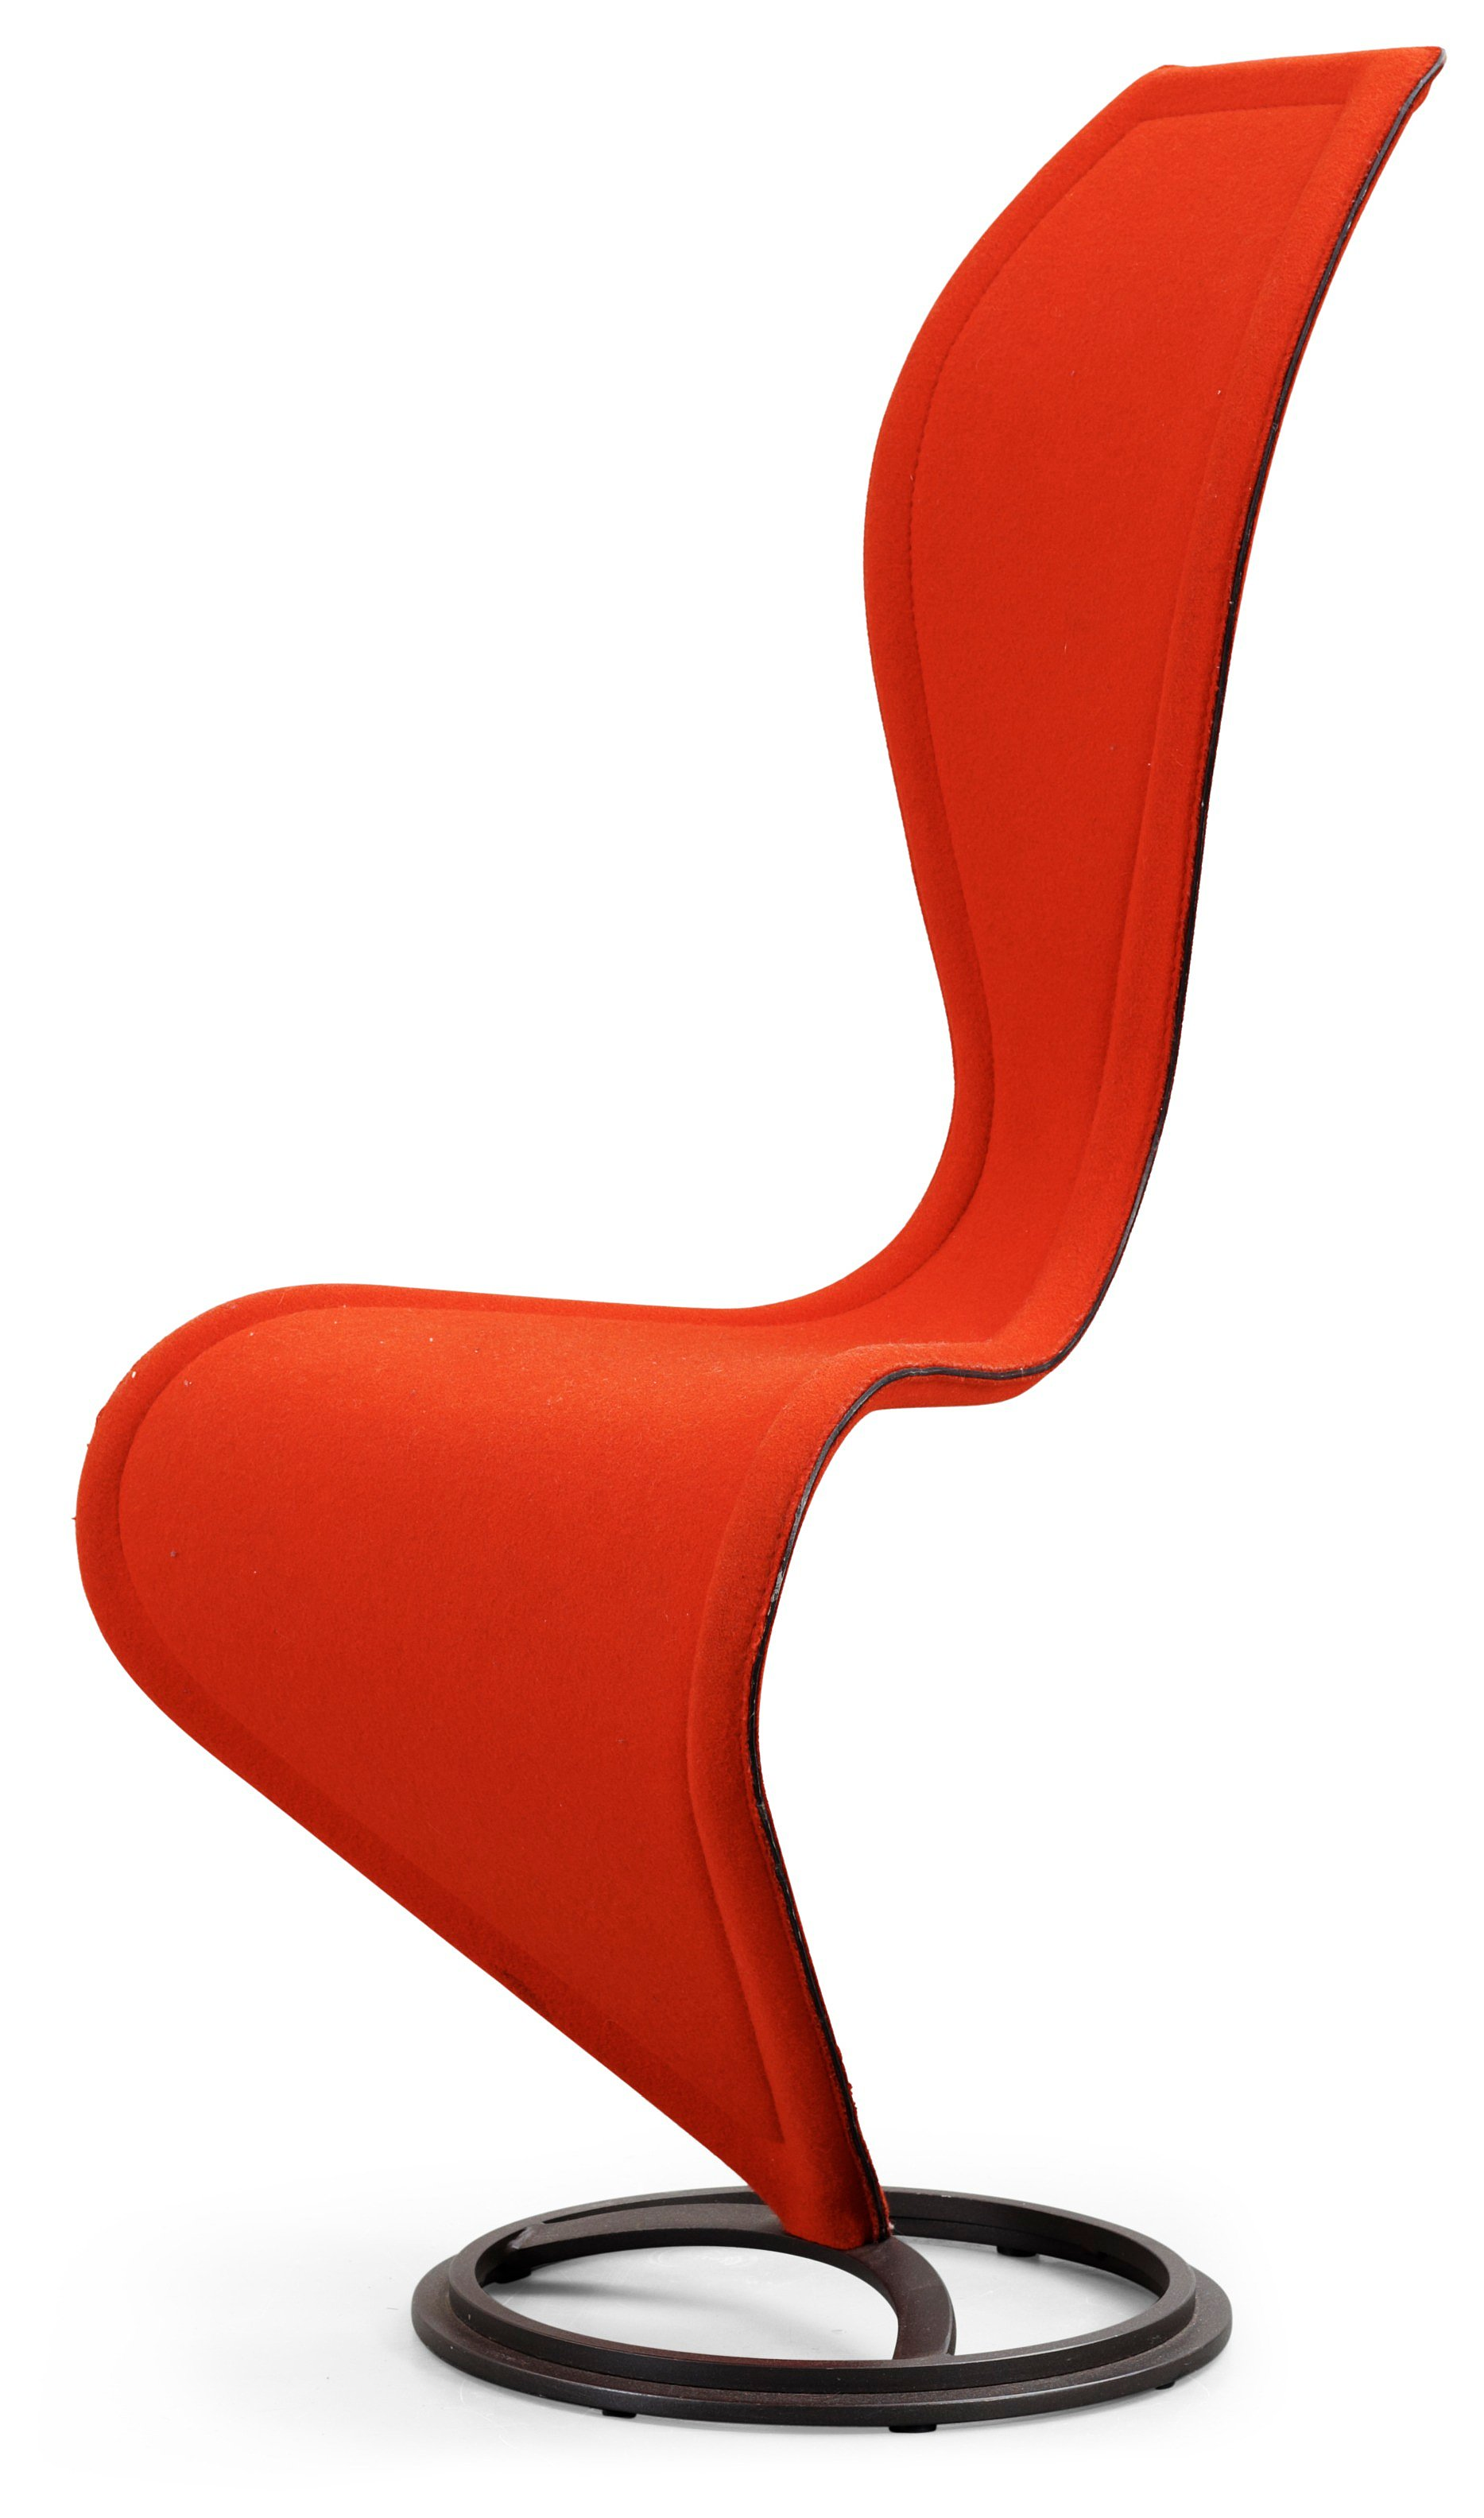 POST 2 Sitting Pretty 20th Century Chairs Tom Dixon – lily